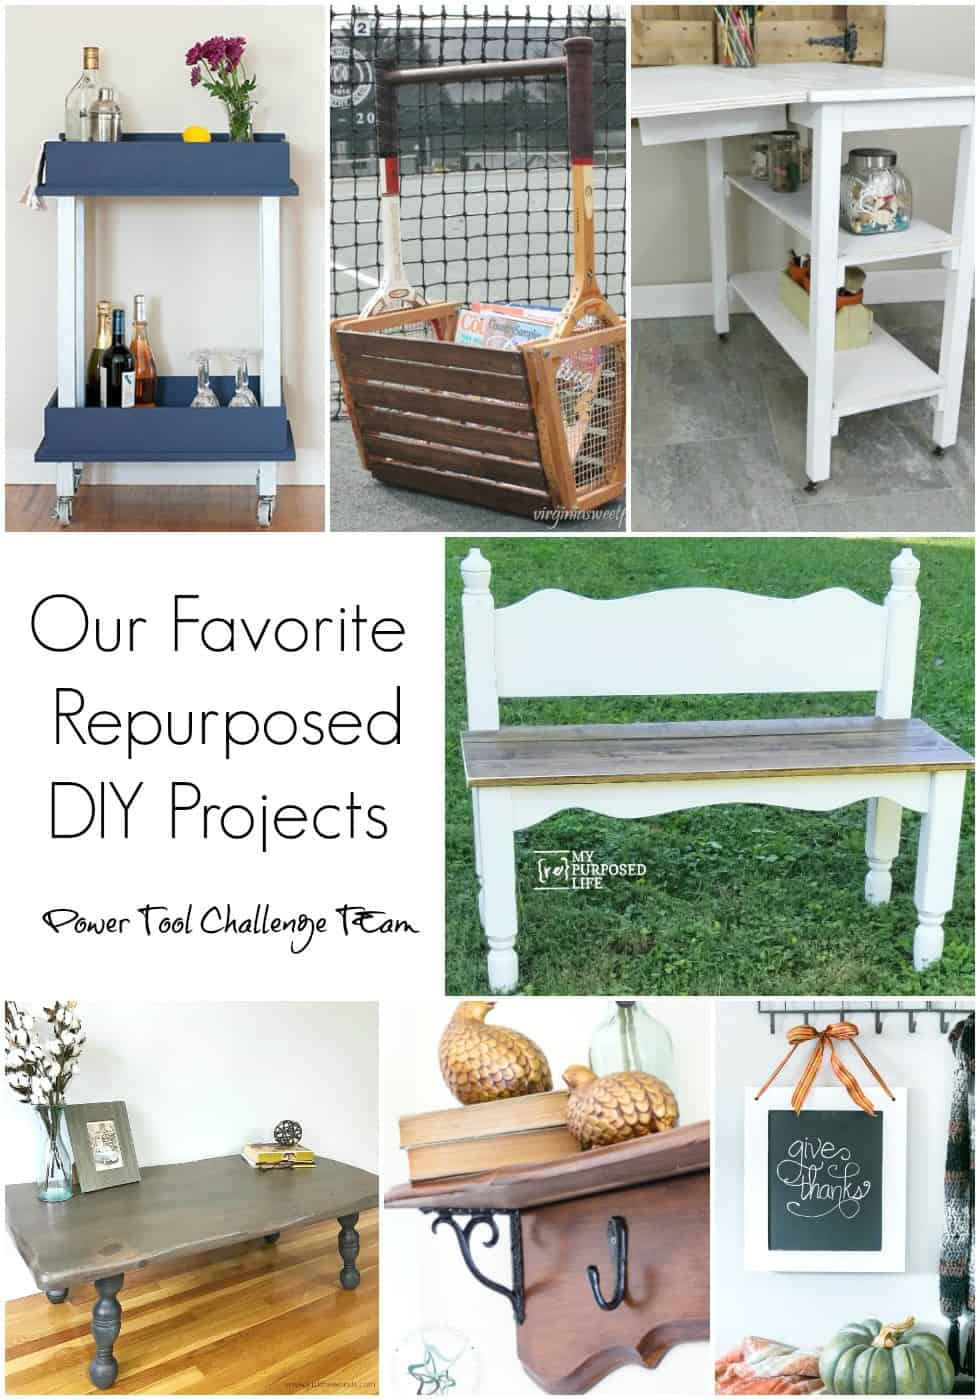 power tool challenge, upcycle projects, repurposed projects, blog hop, diyi blogs